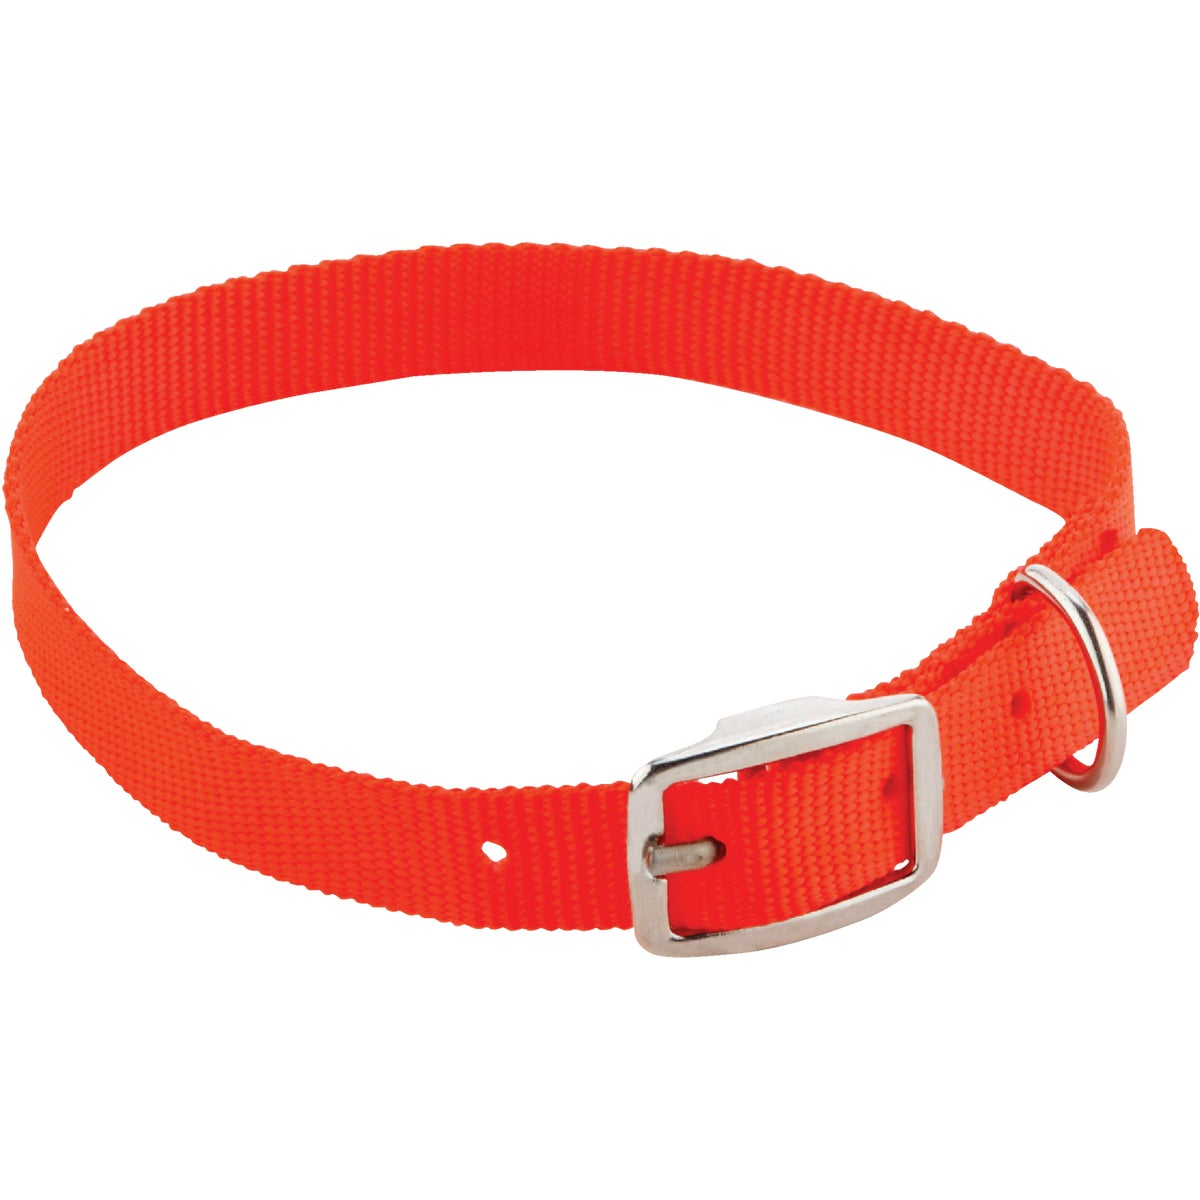 "24"" ORANGE NYLON COLLAR"